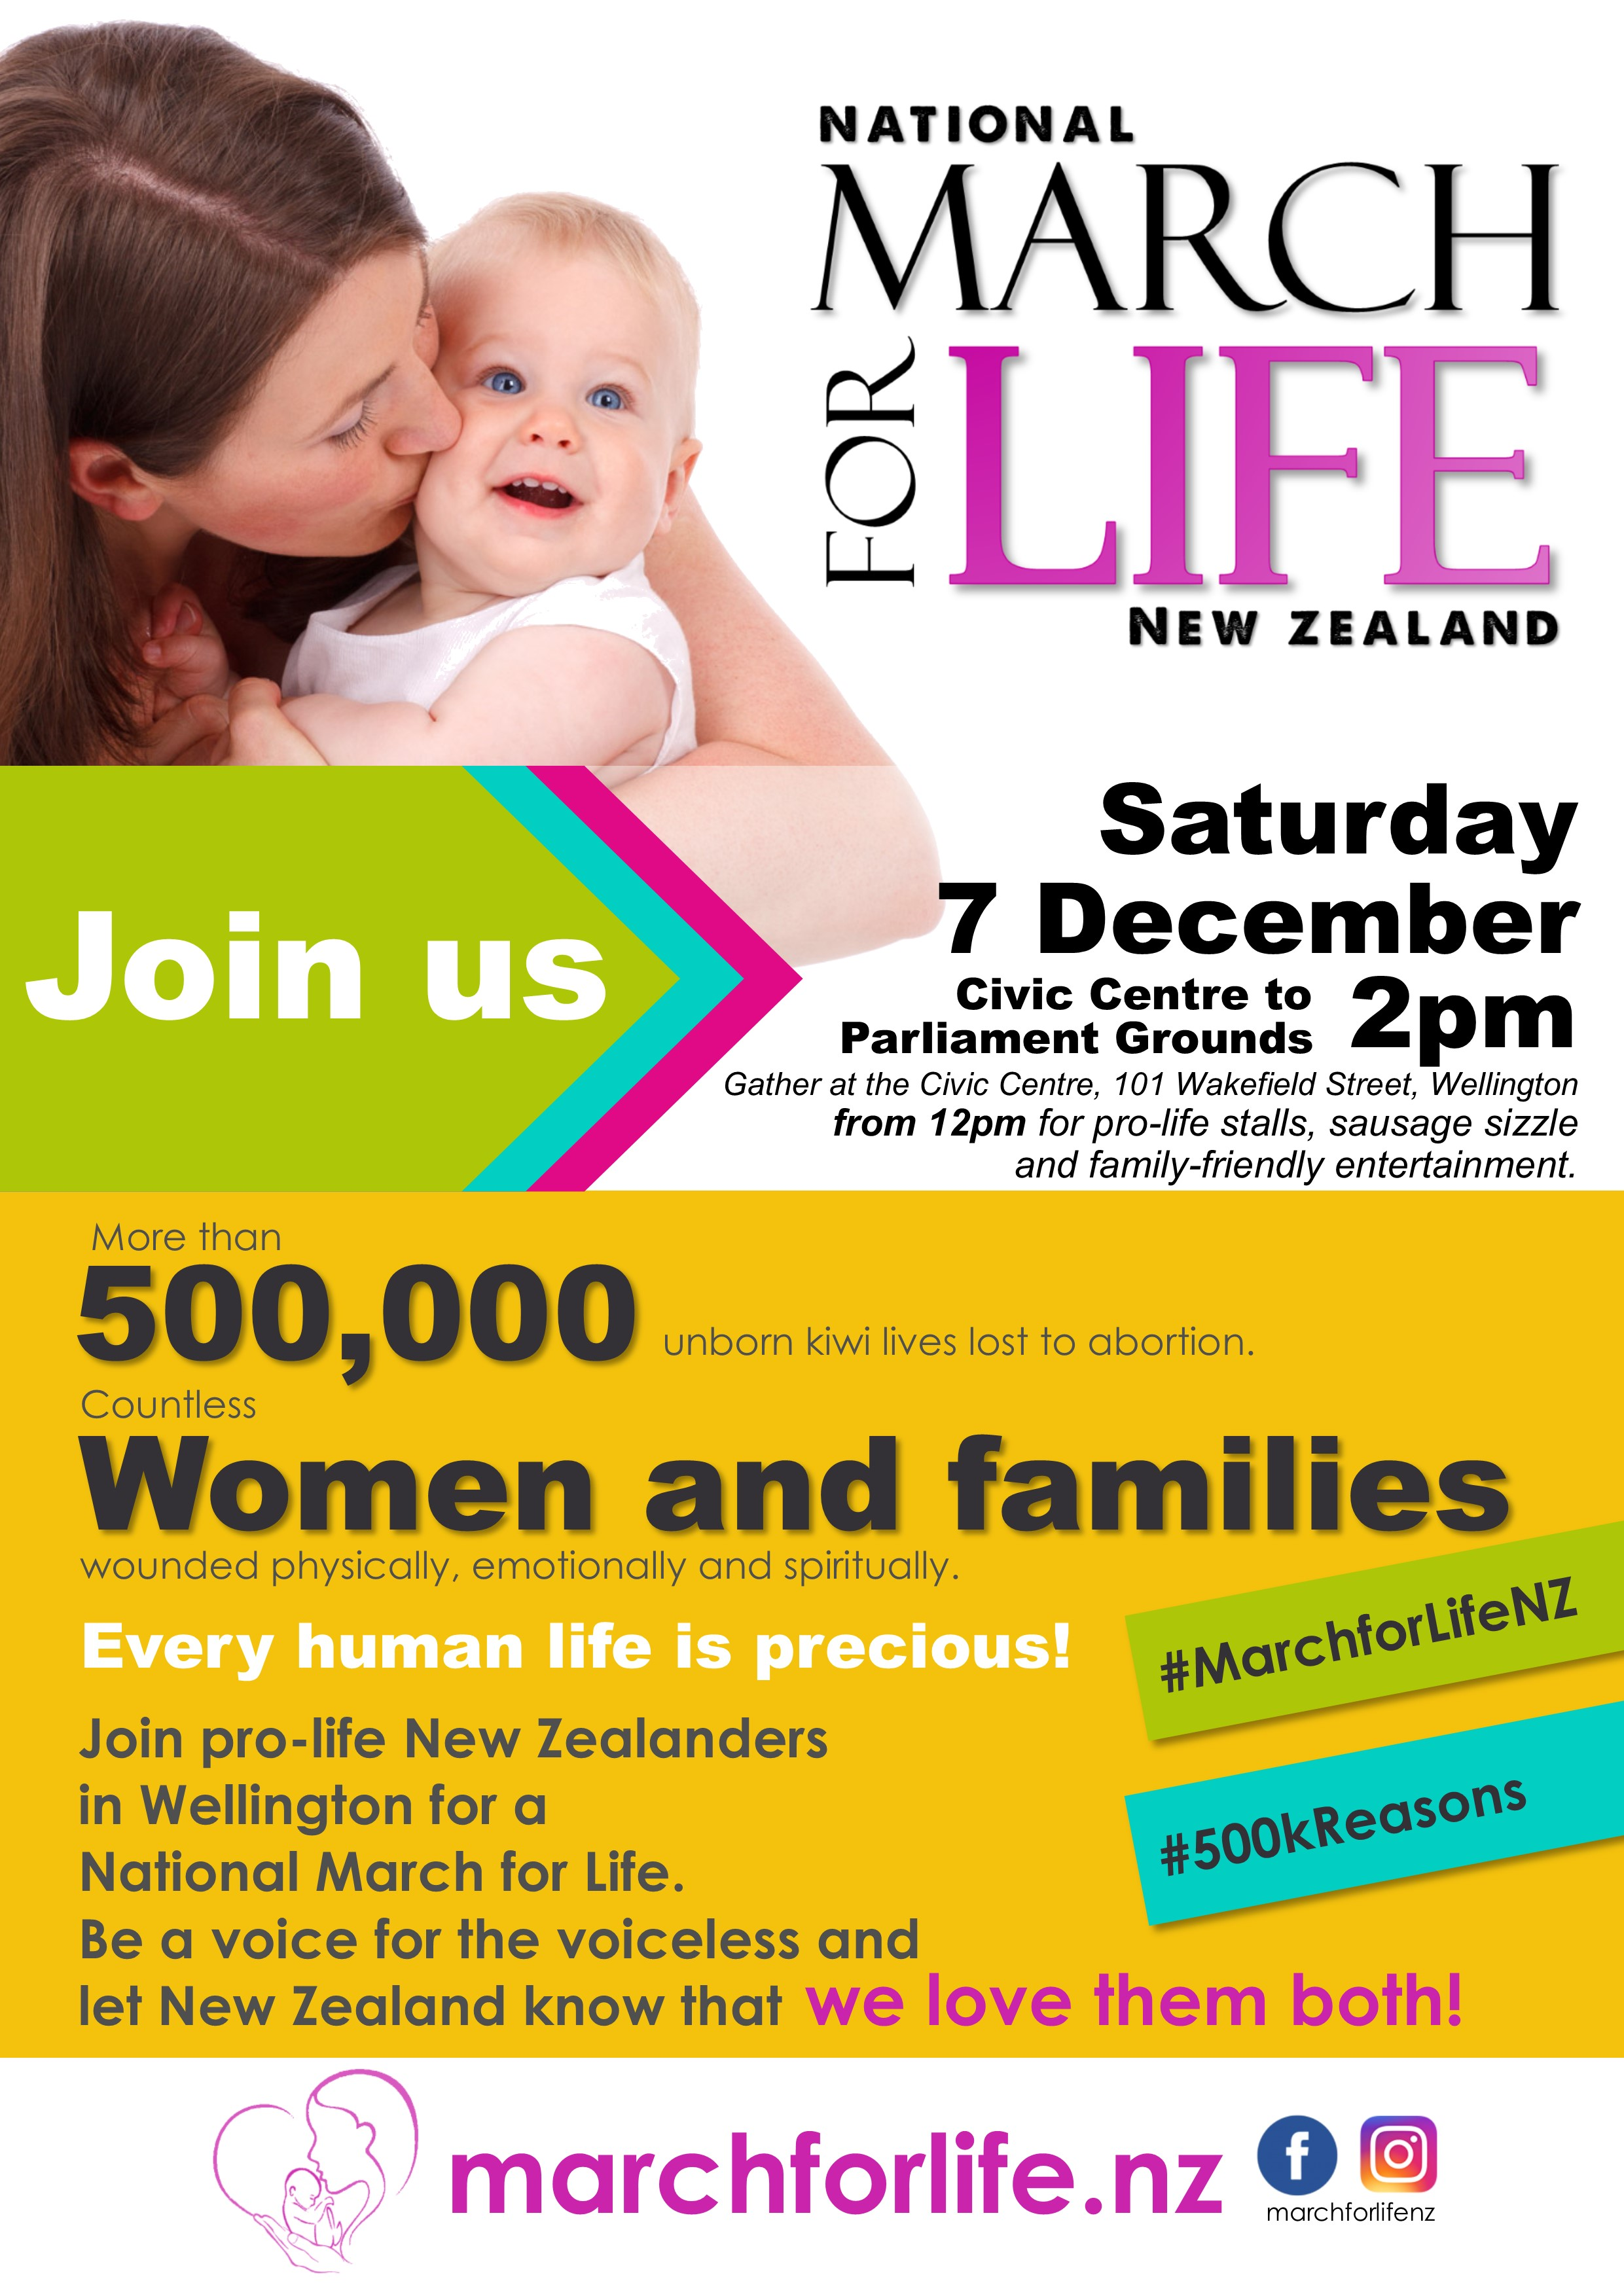 National March for Life 2019 Flyer